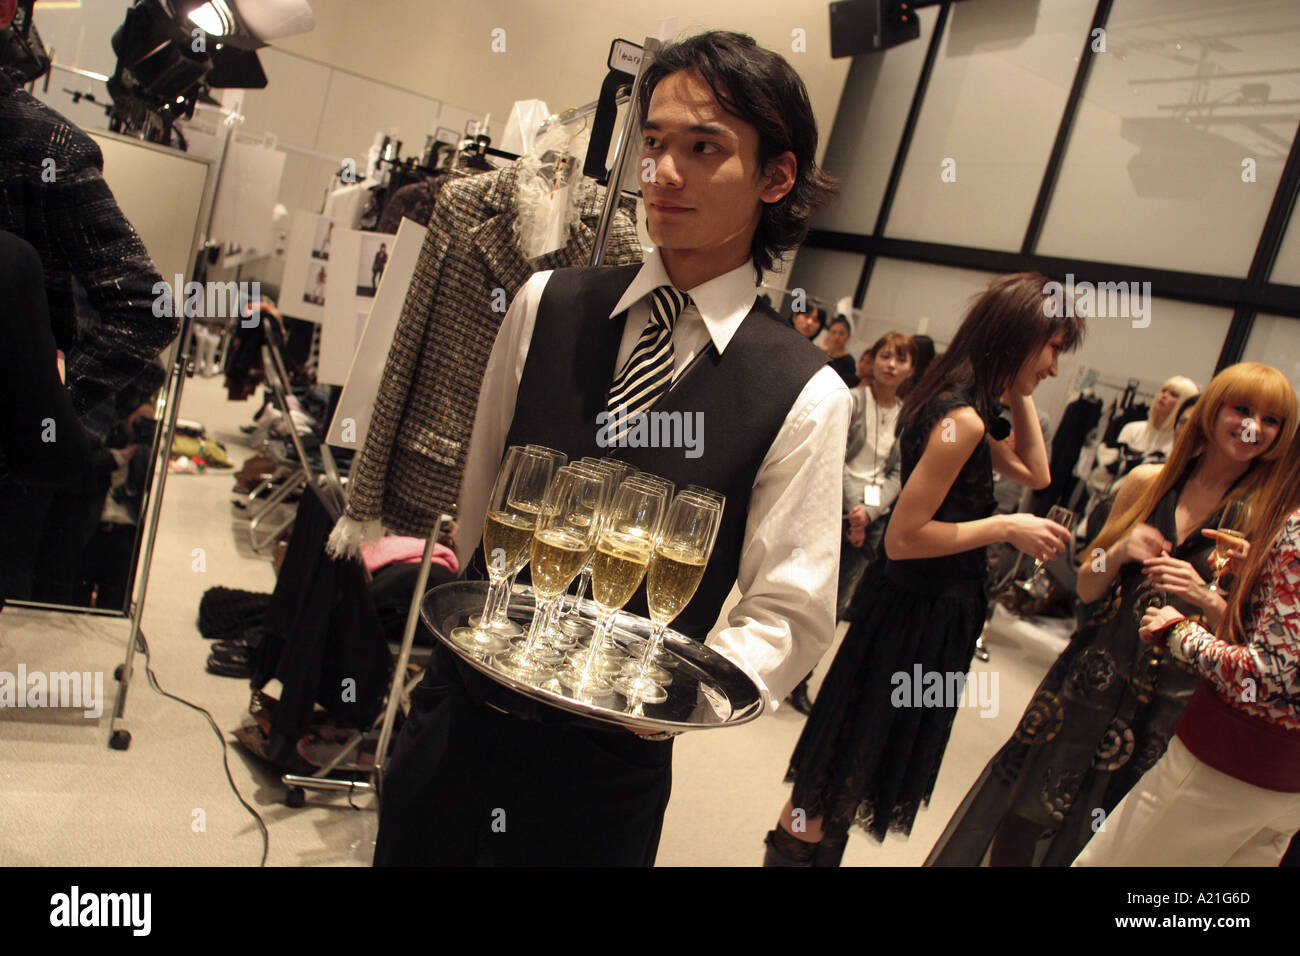 Waiter and models backstage with champagne after Chanel fashion show, Tokyo, Japan. - Stock Image